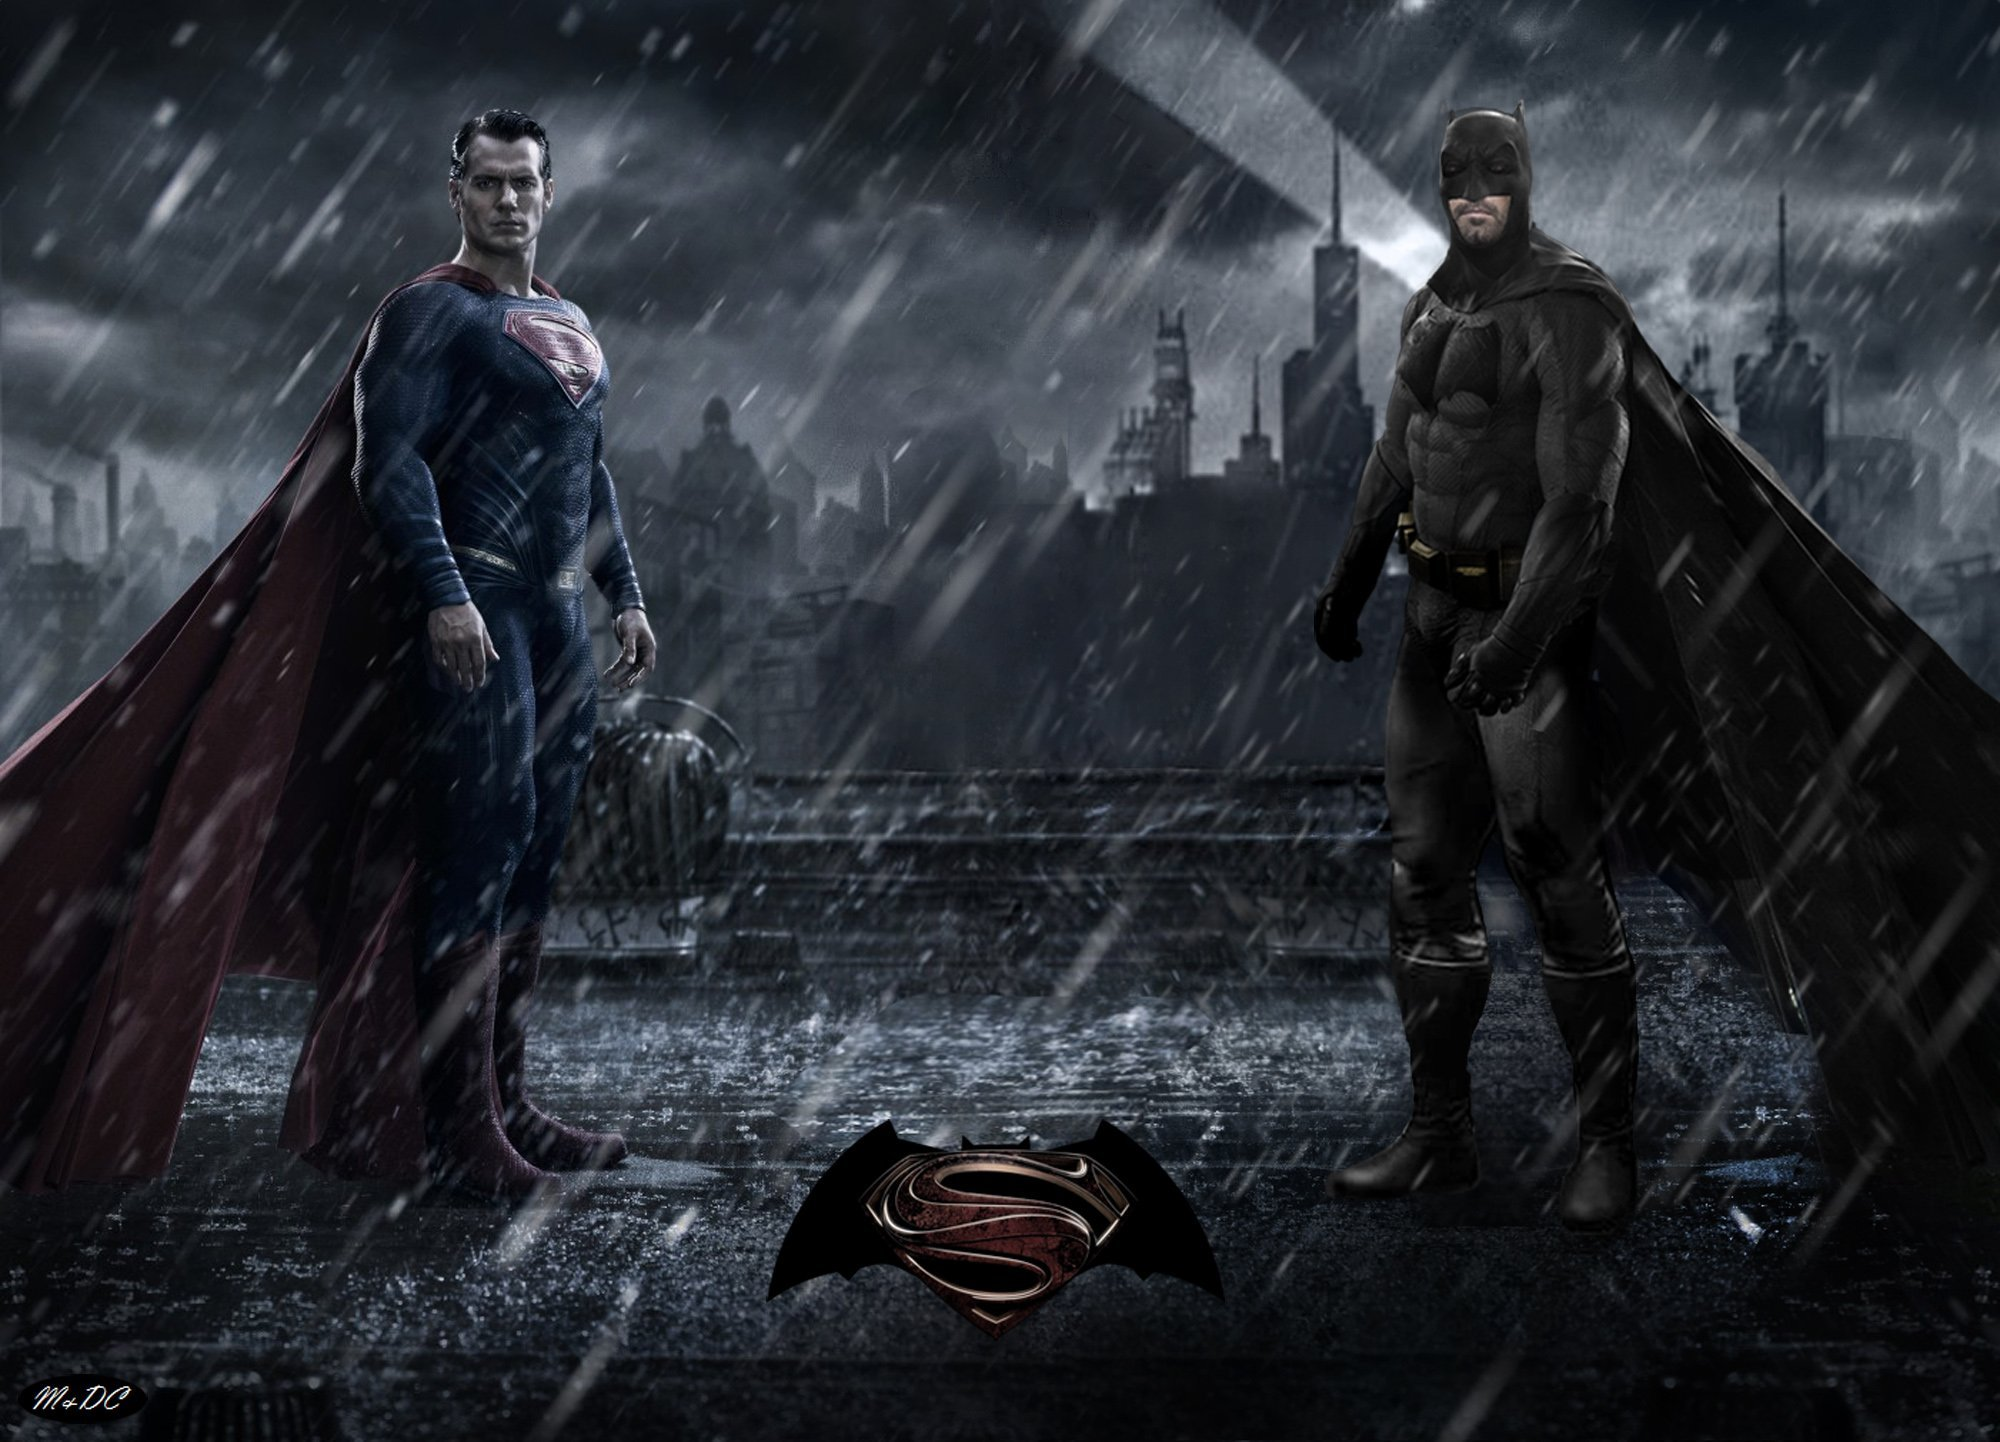 SUPERMAN adventure action batman superman dawn justice wallpaper 2000x1442